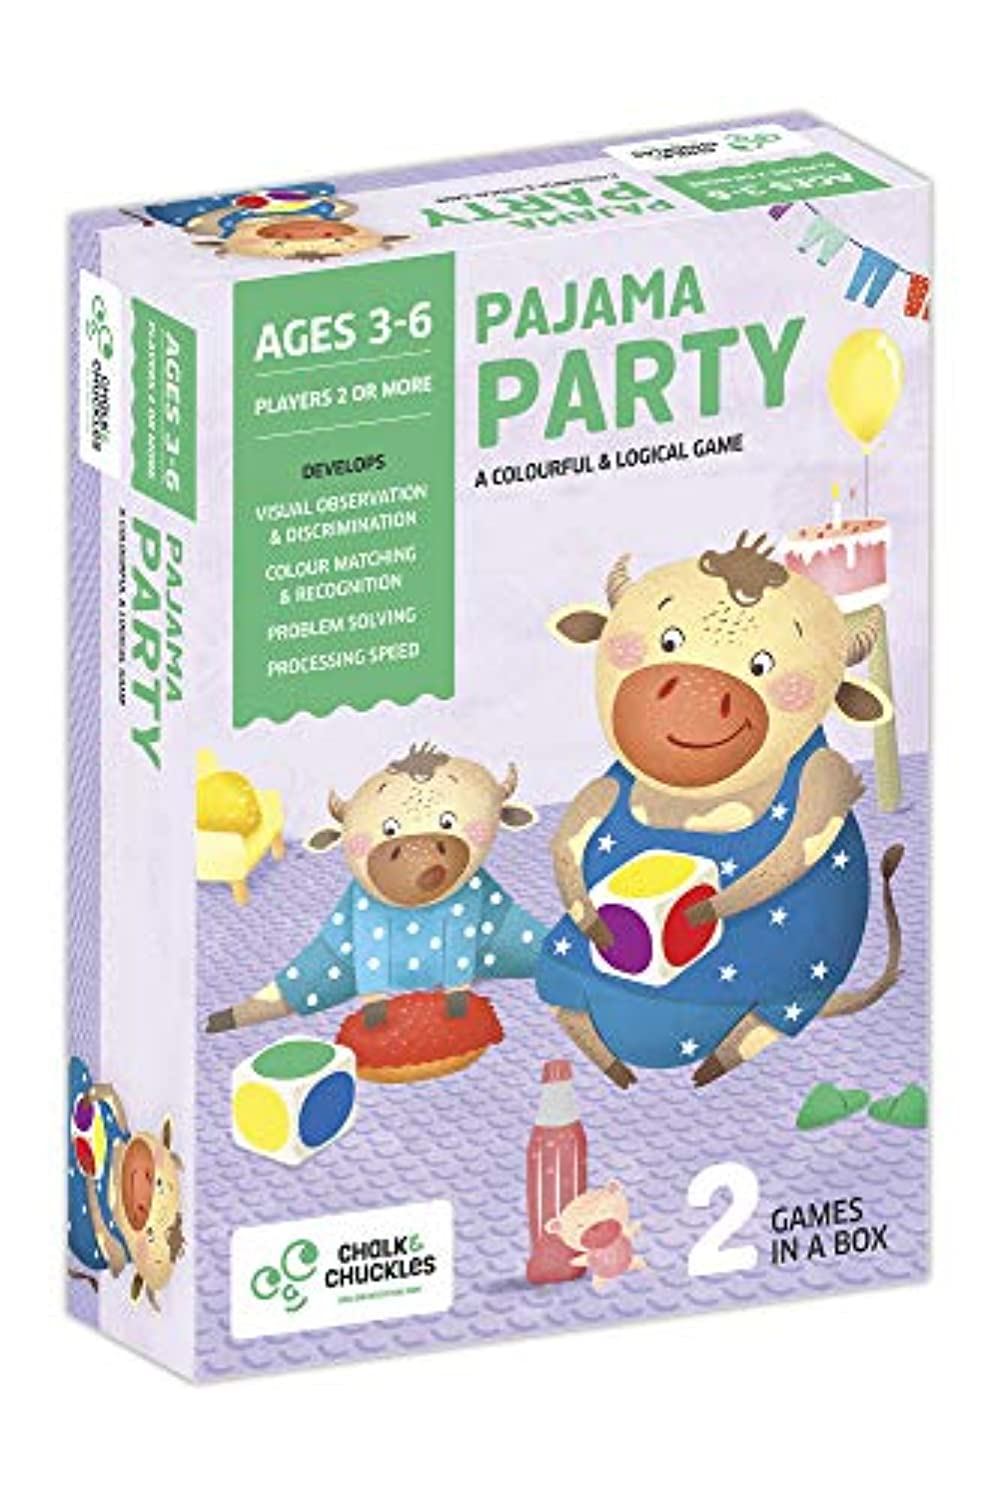 Chalk and Chuckles Pajama Party Colourful and Logical Game, Preschoolers